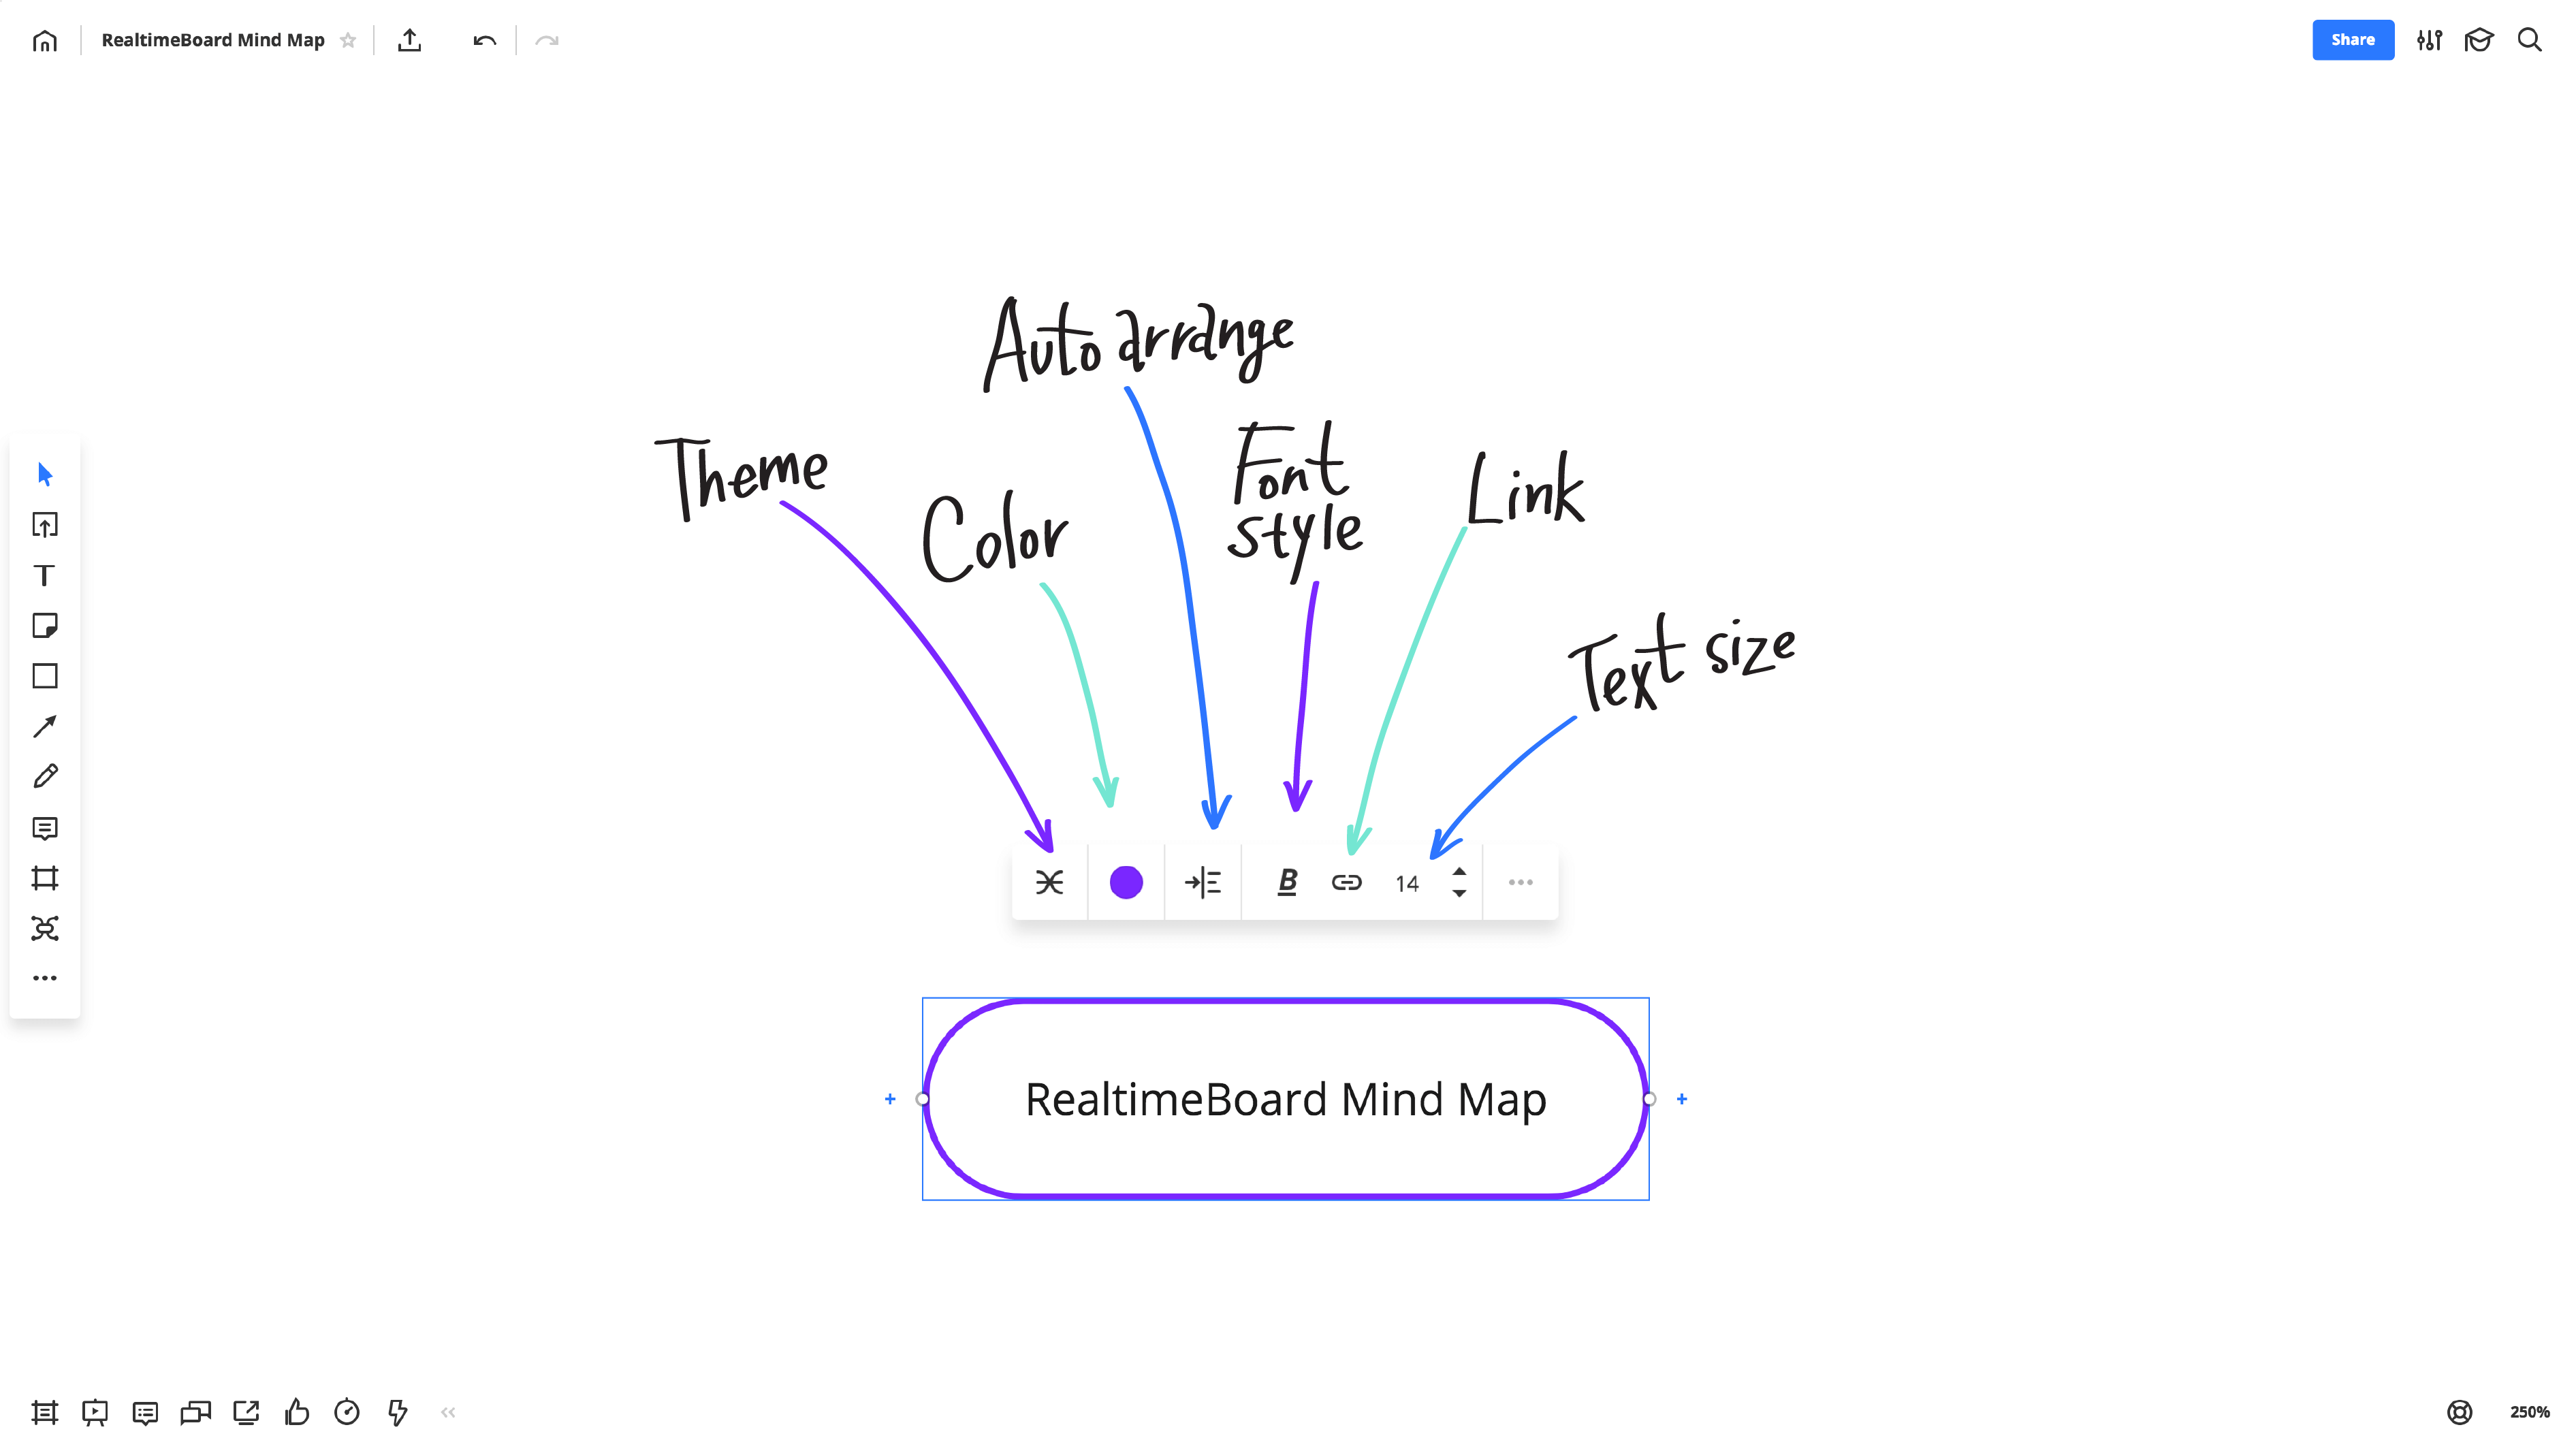 Mind map tool to build, customize, present and collaborate on awesome mind maps - toolbar